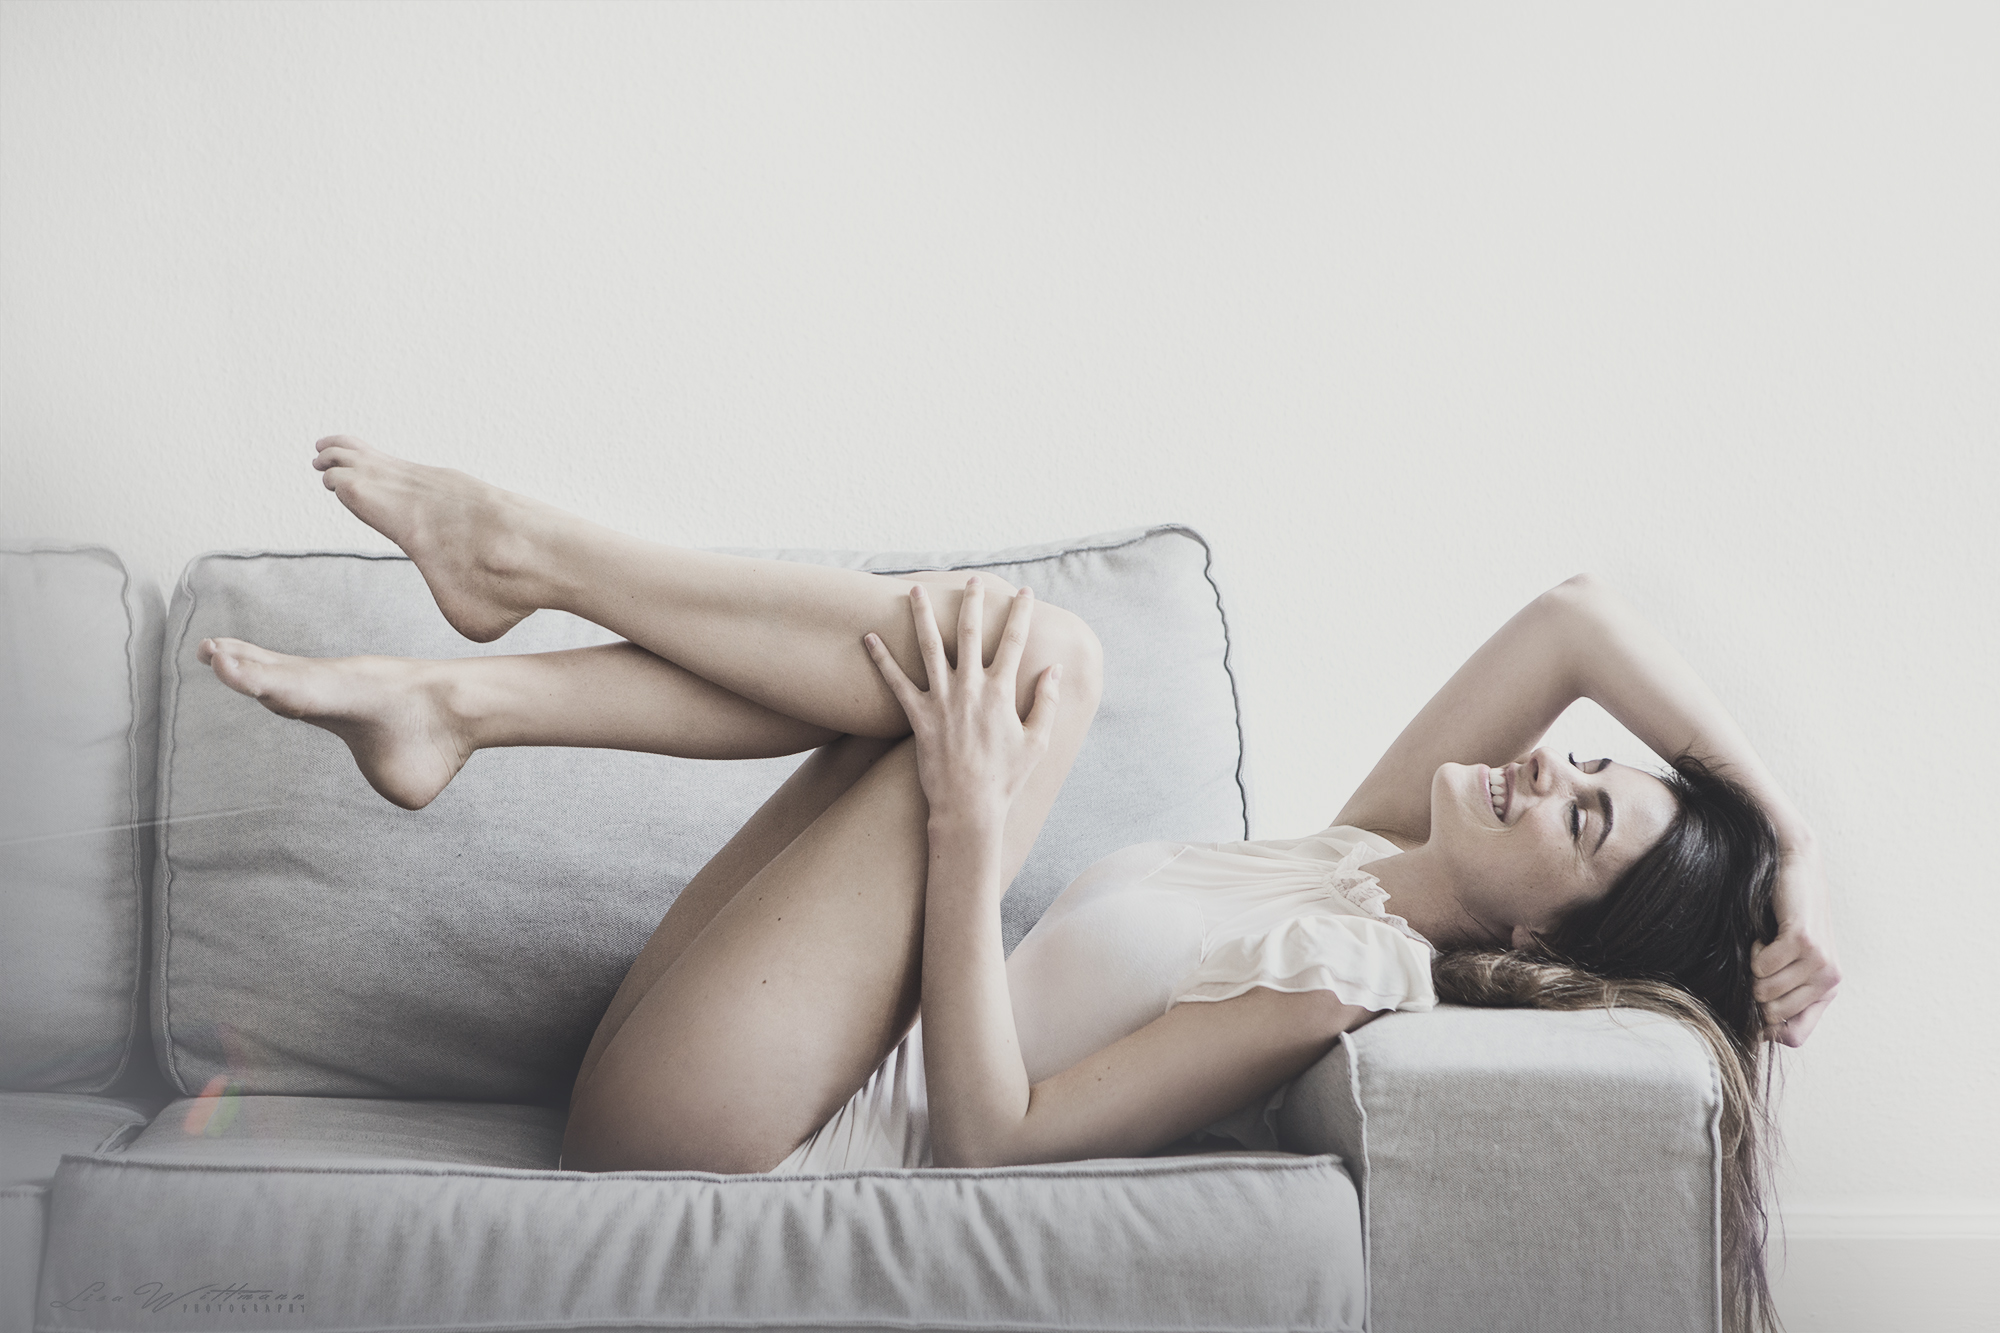 lisa_wittmann_photography_woman_body_bodysuit_laugh_fun_smile_apartment_flat_sofa_couch_sexy_sweet_available_light_canon